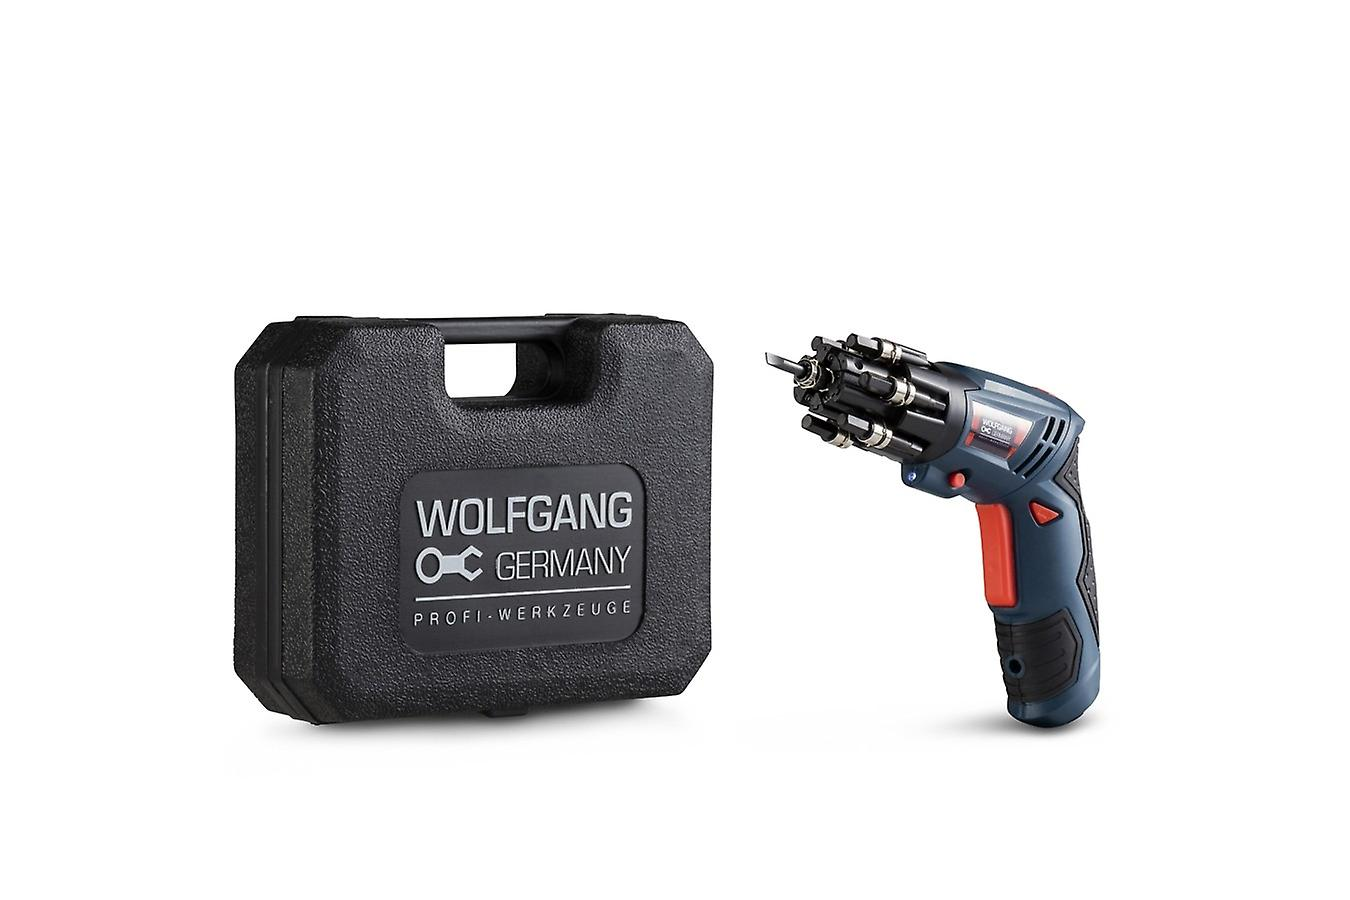 WOLFGANG 3.6 V Cordless Screwdriver Small, Mini Cordless Screwdriver Set, 1500mAh Li-ion, Quick Charge, 90° Rotary Handle, LED, 21 Bits, Bit Holder and Case, For Screws, Furniture, Assembly